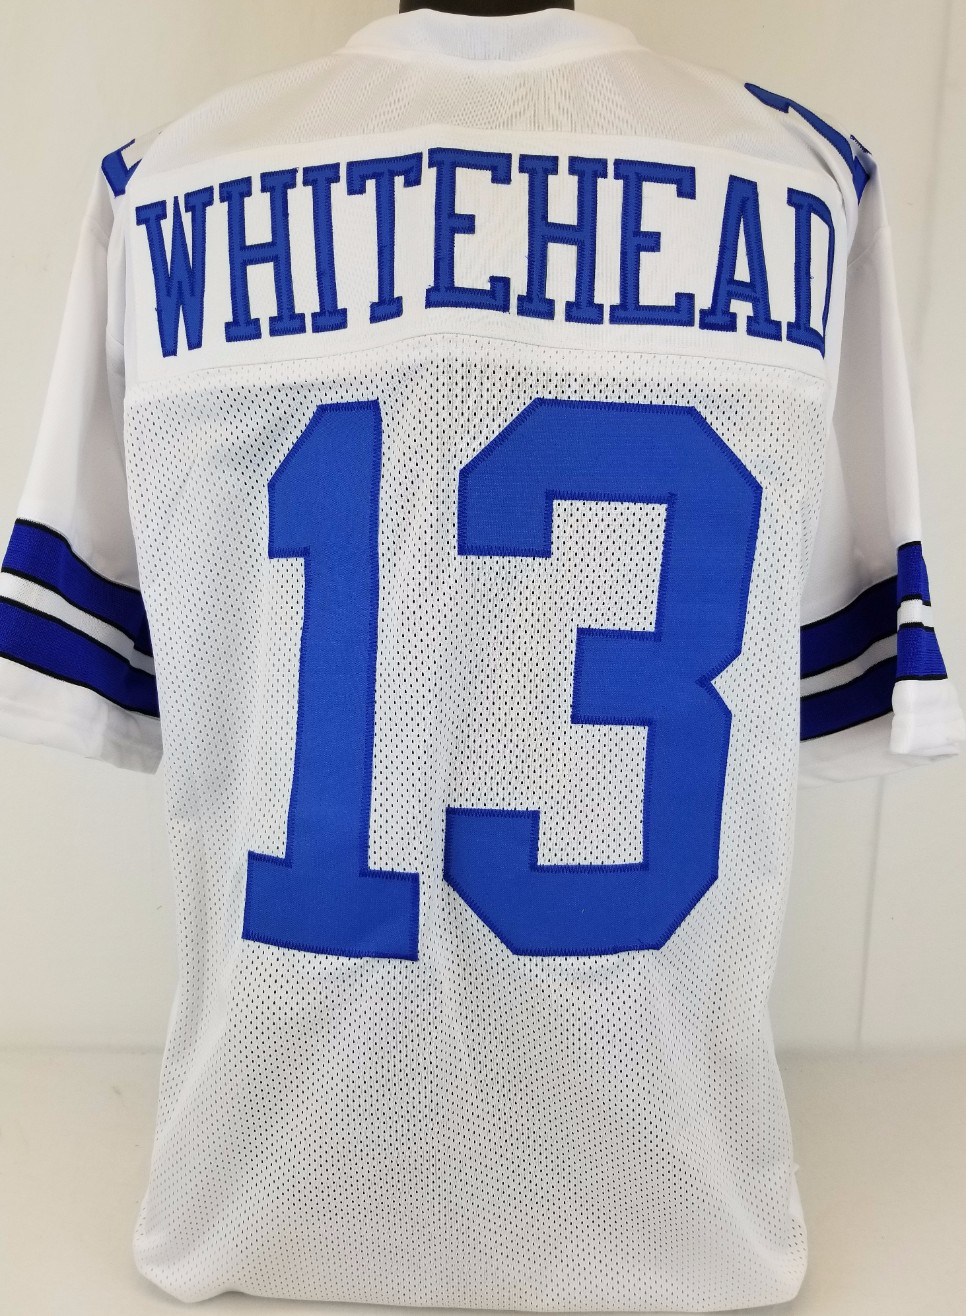 Item Detail - Lucky Whitehead Dallas Cowboys Custom Home Jersey ...